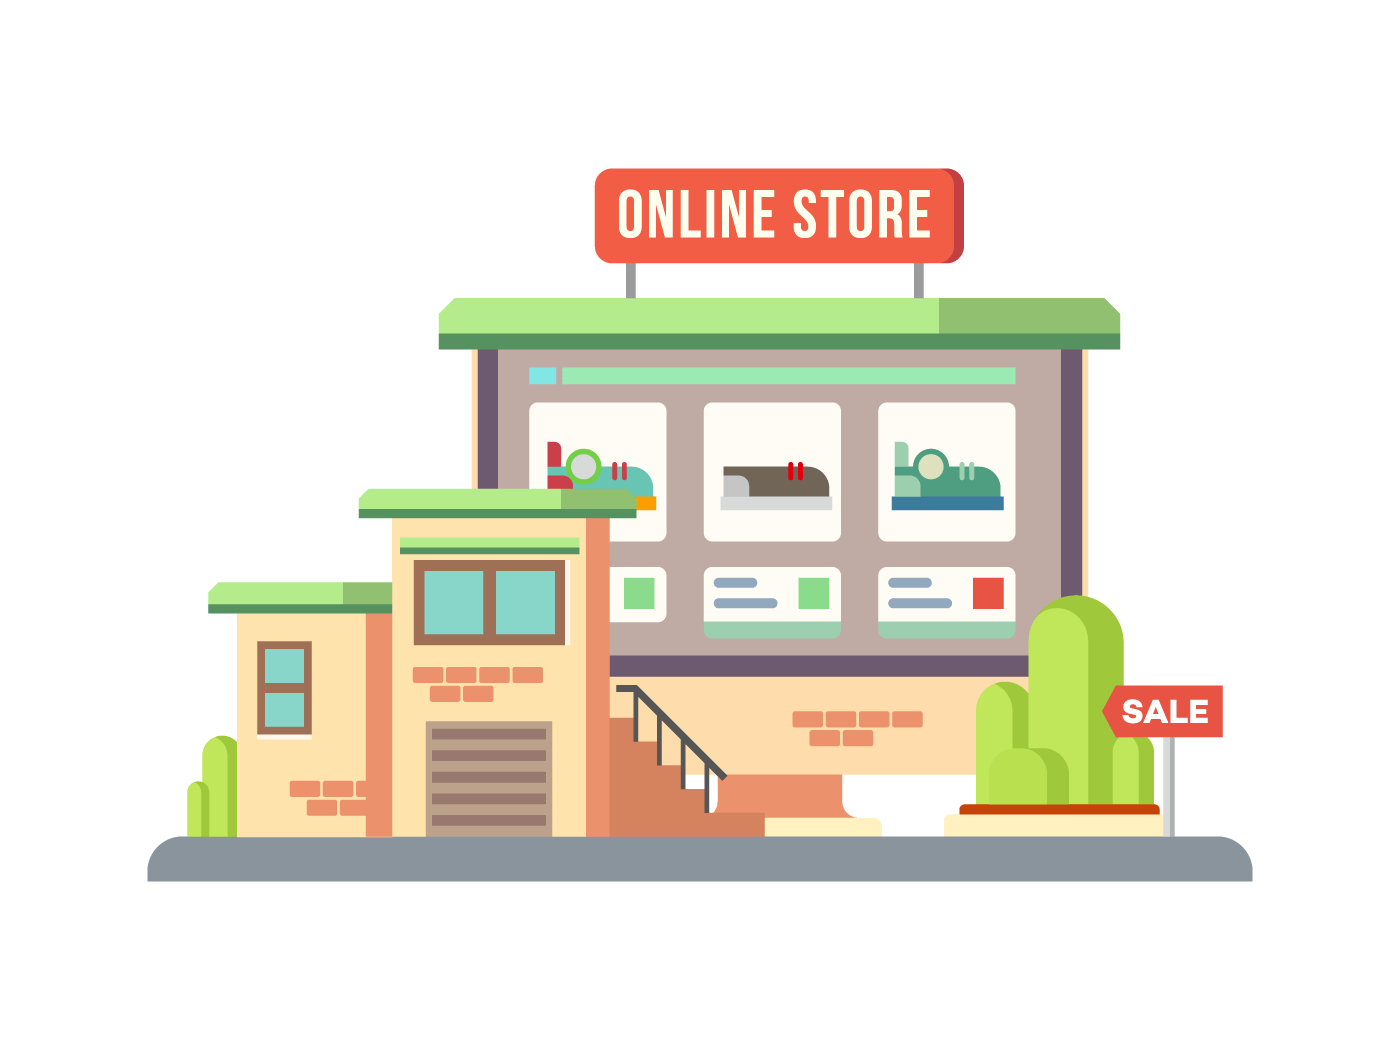 Online Shop Building vector concept flat illustration isolated white background